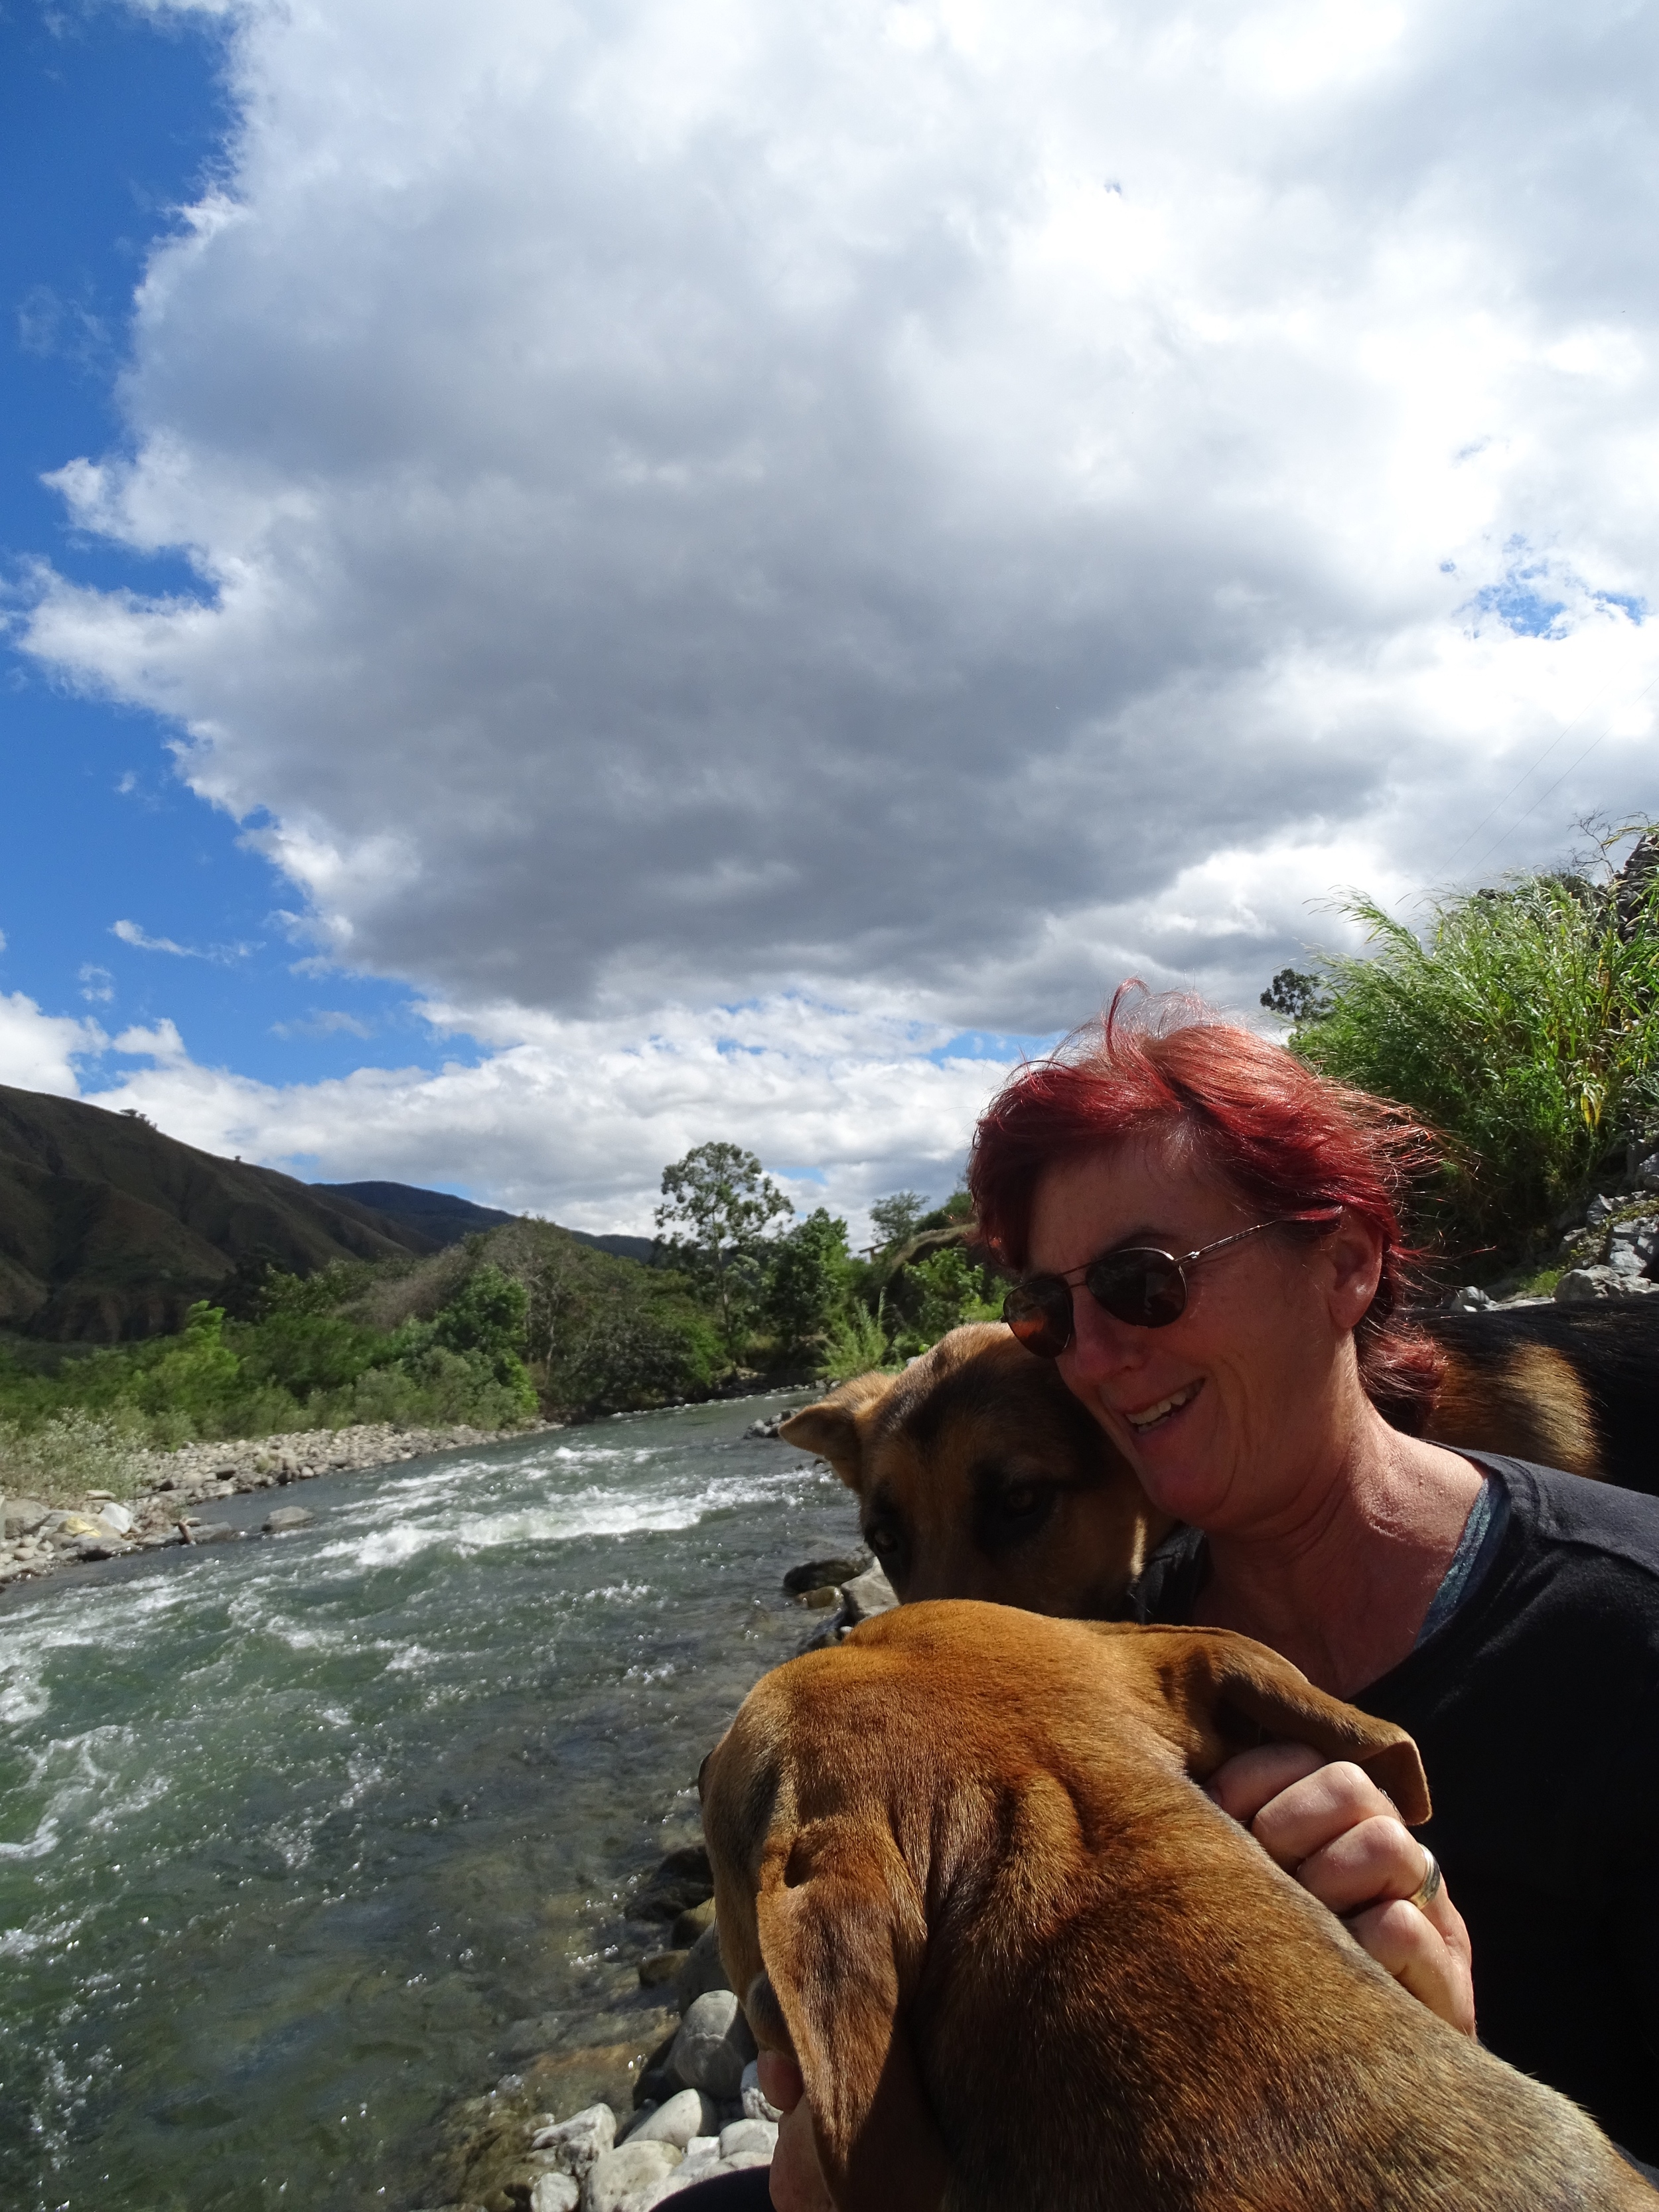 Hanging out by the river with the dogs.